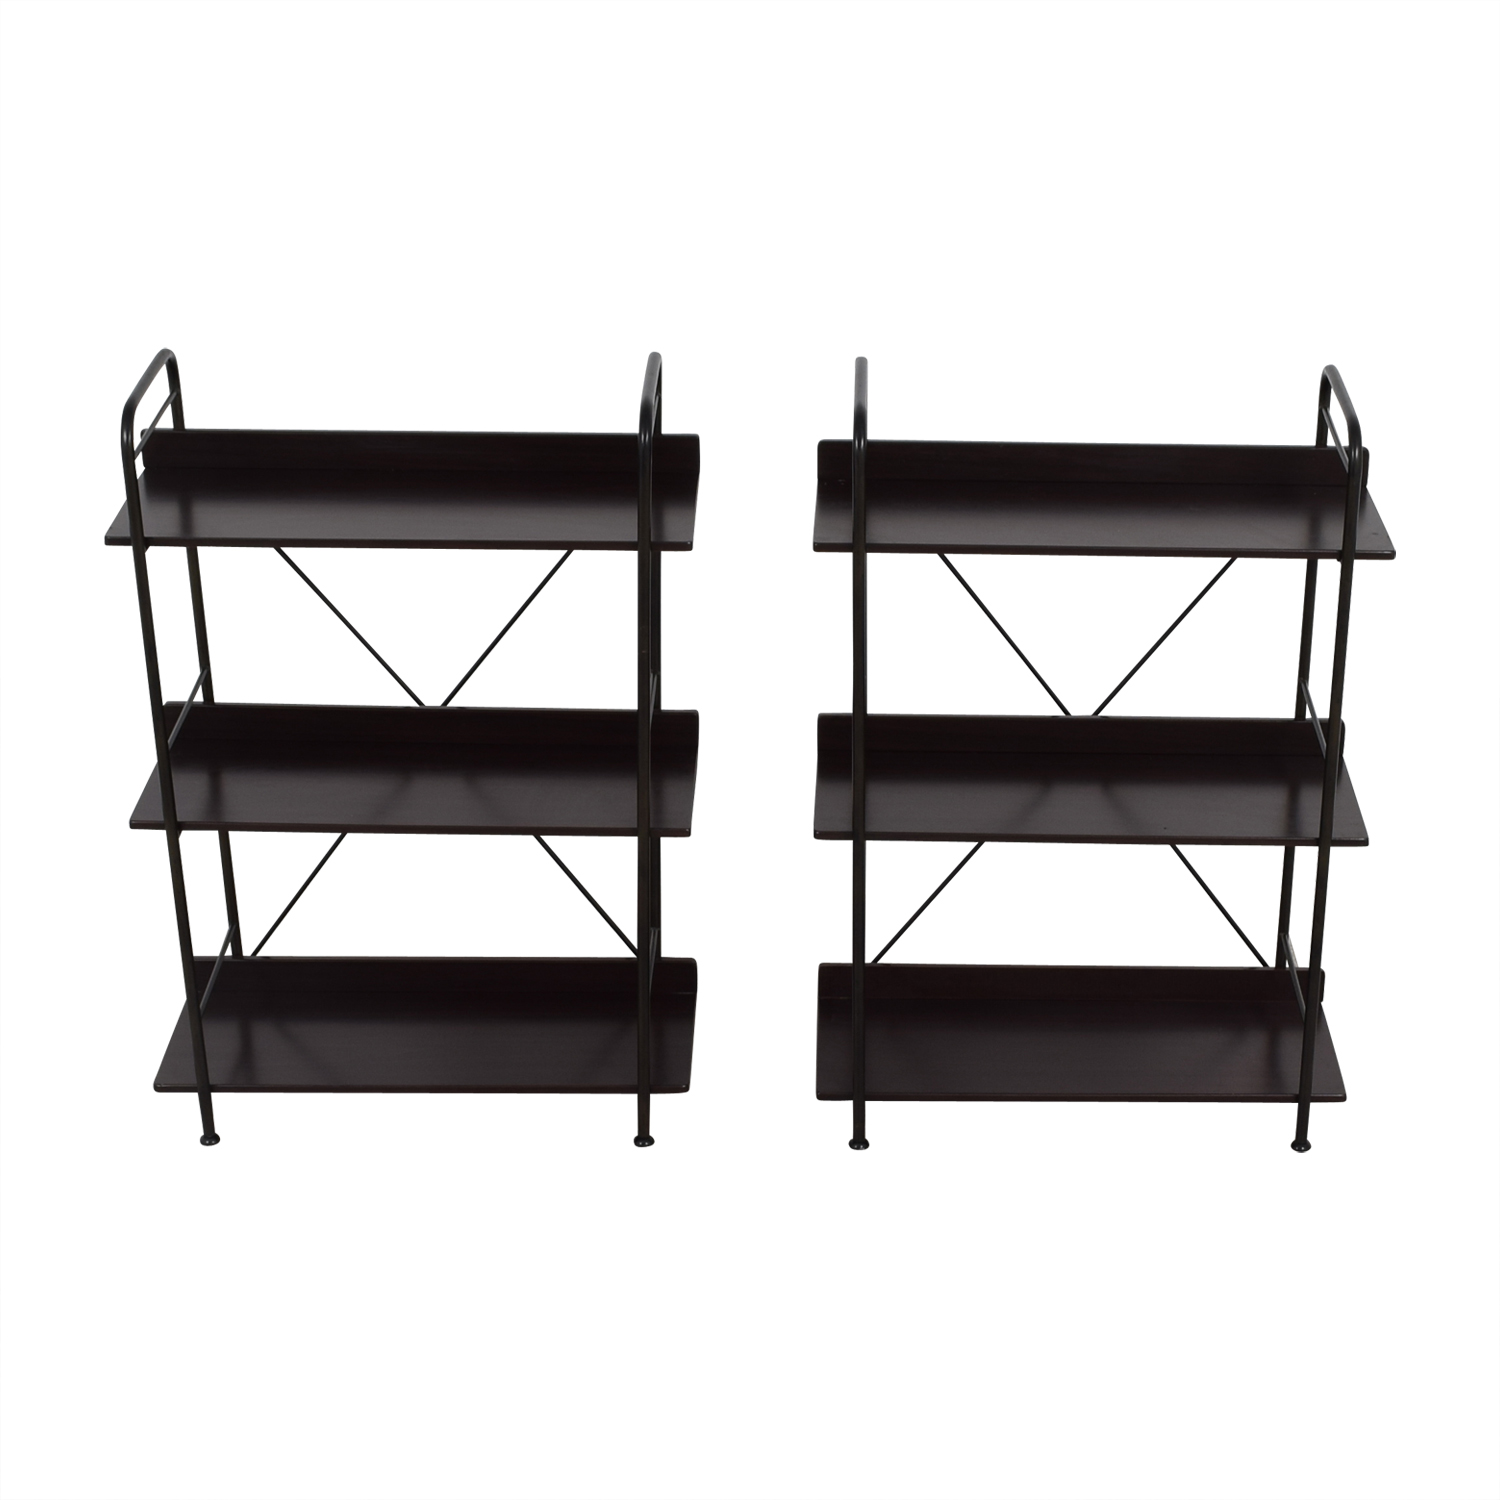 IKEA IKEA Black Bookcases or Storage Shelves on sale